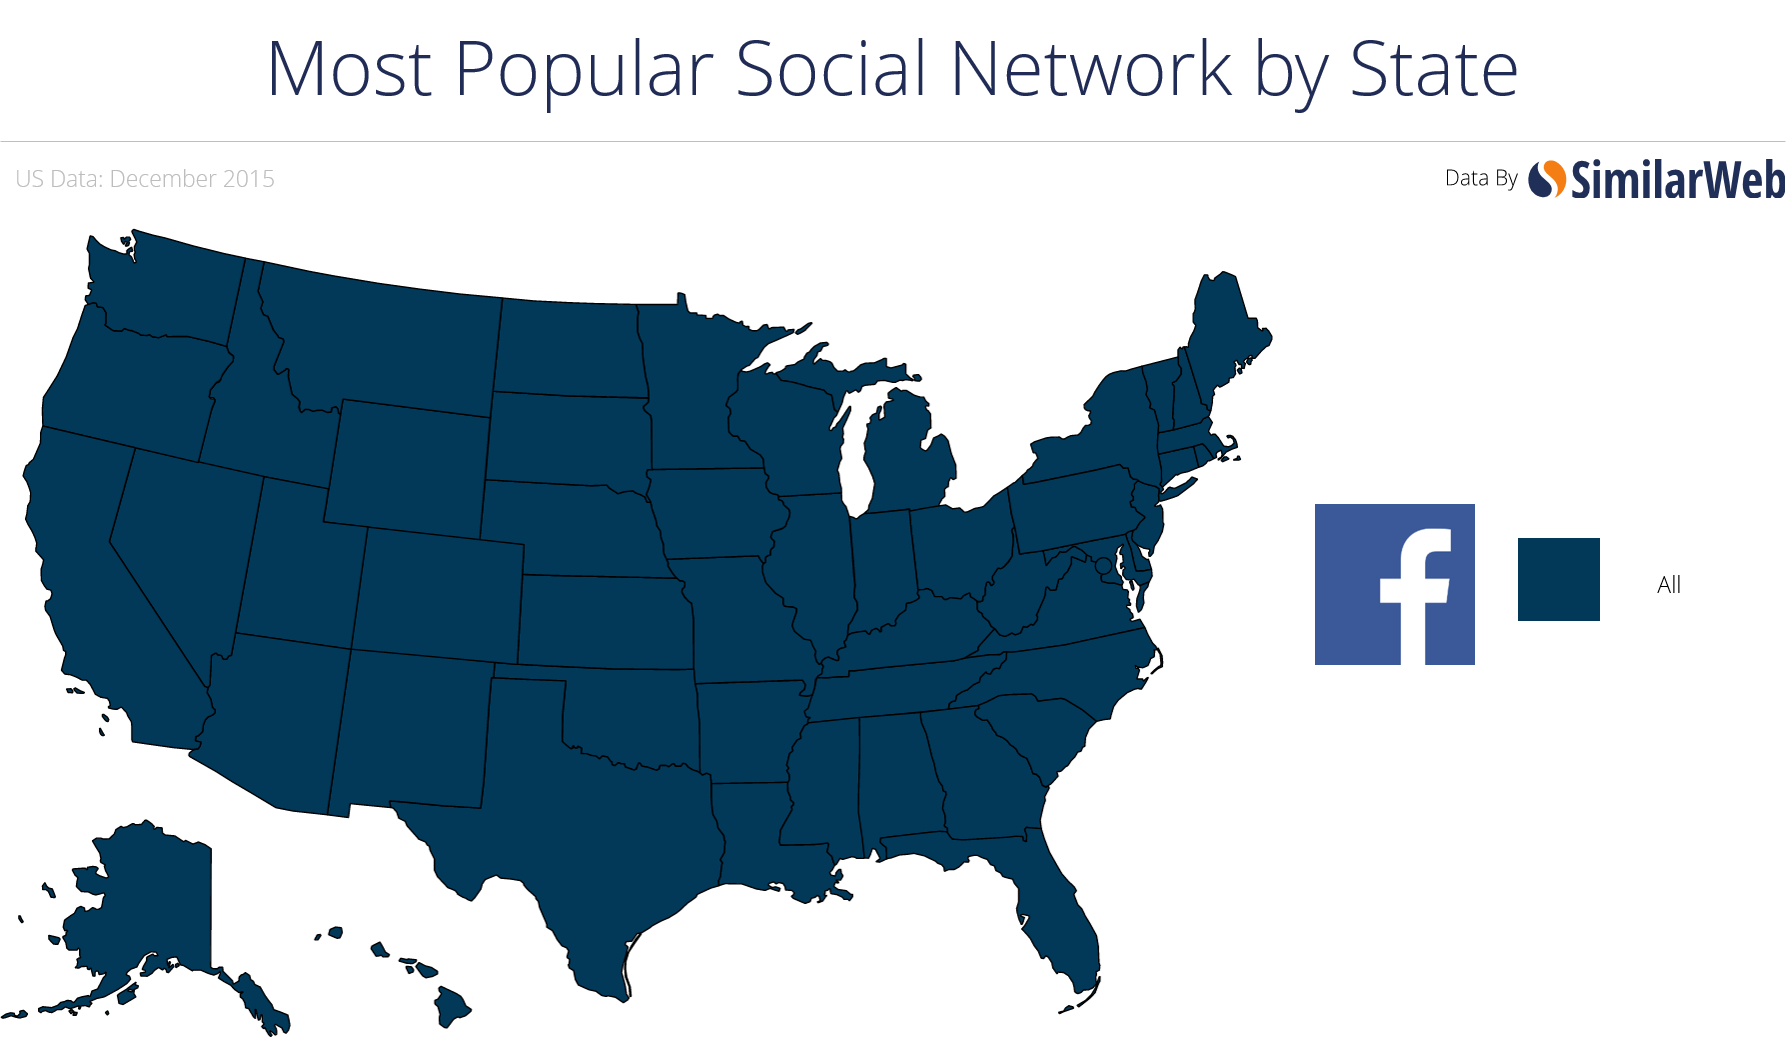 Second Most Popular Social Network by State